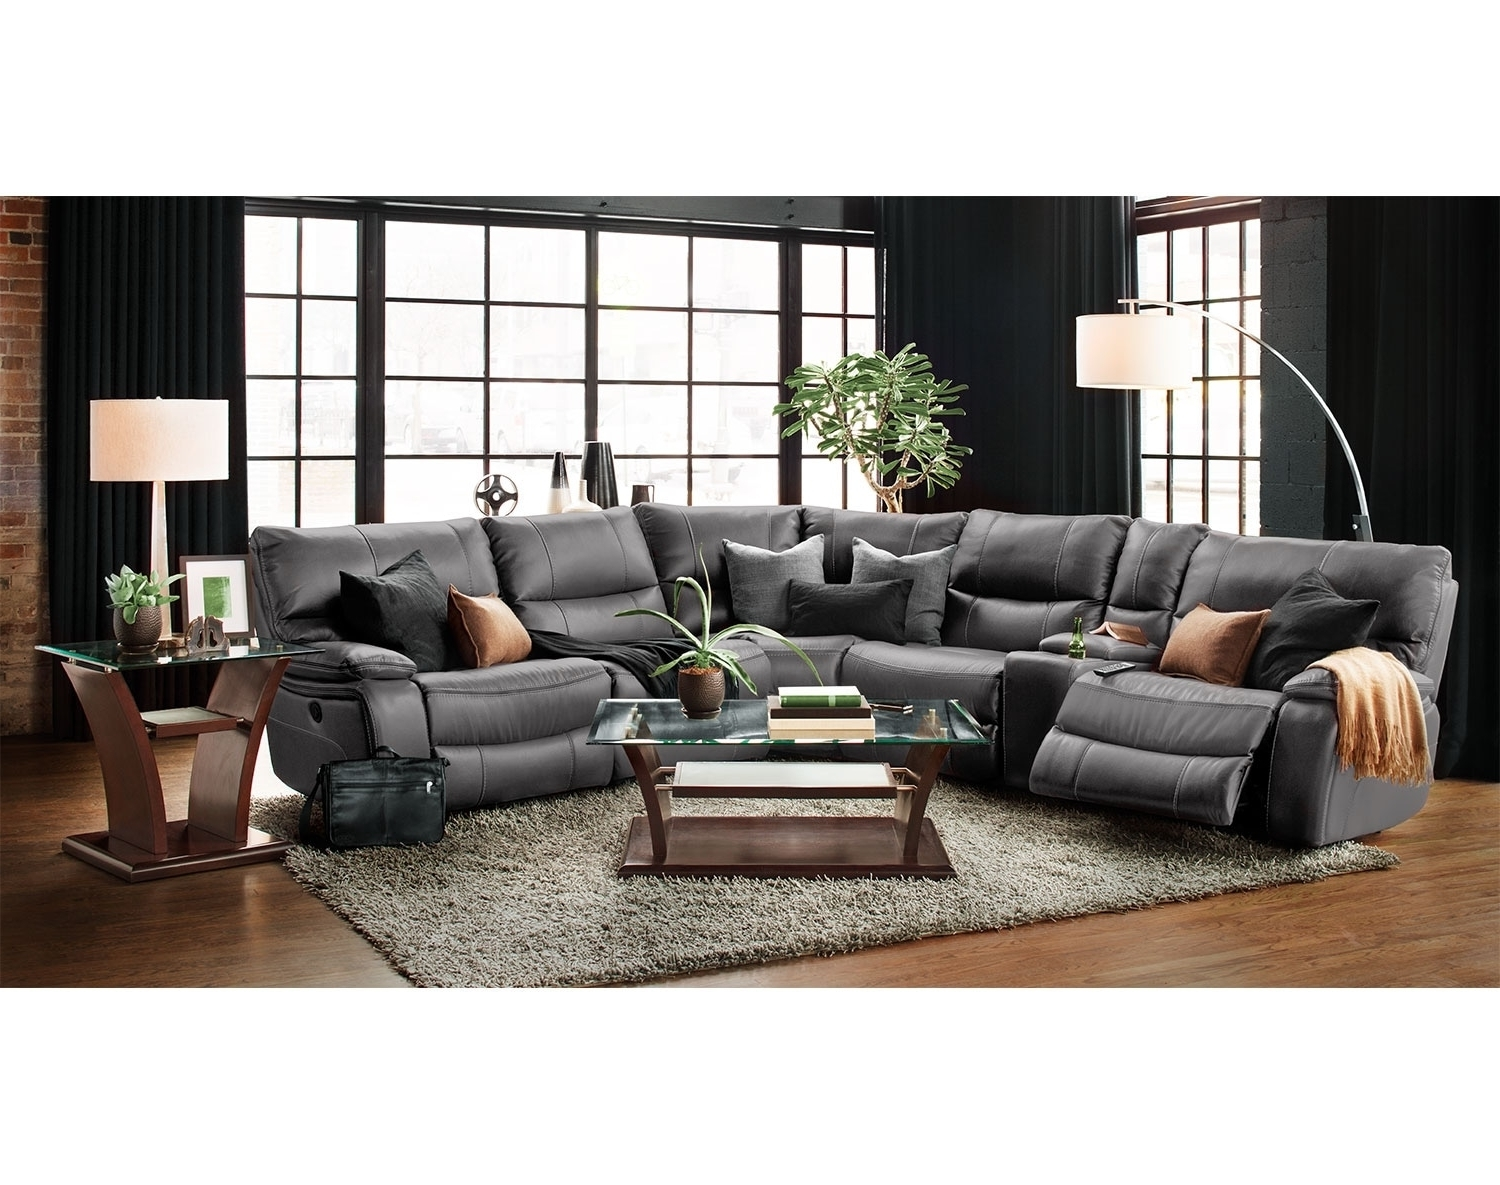 Photos of Orlando Sectional Sofas (Showing 2 of 20 Photos)